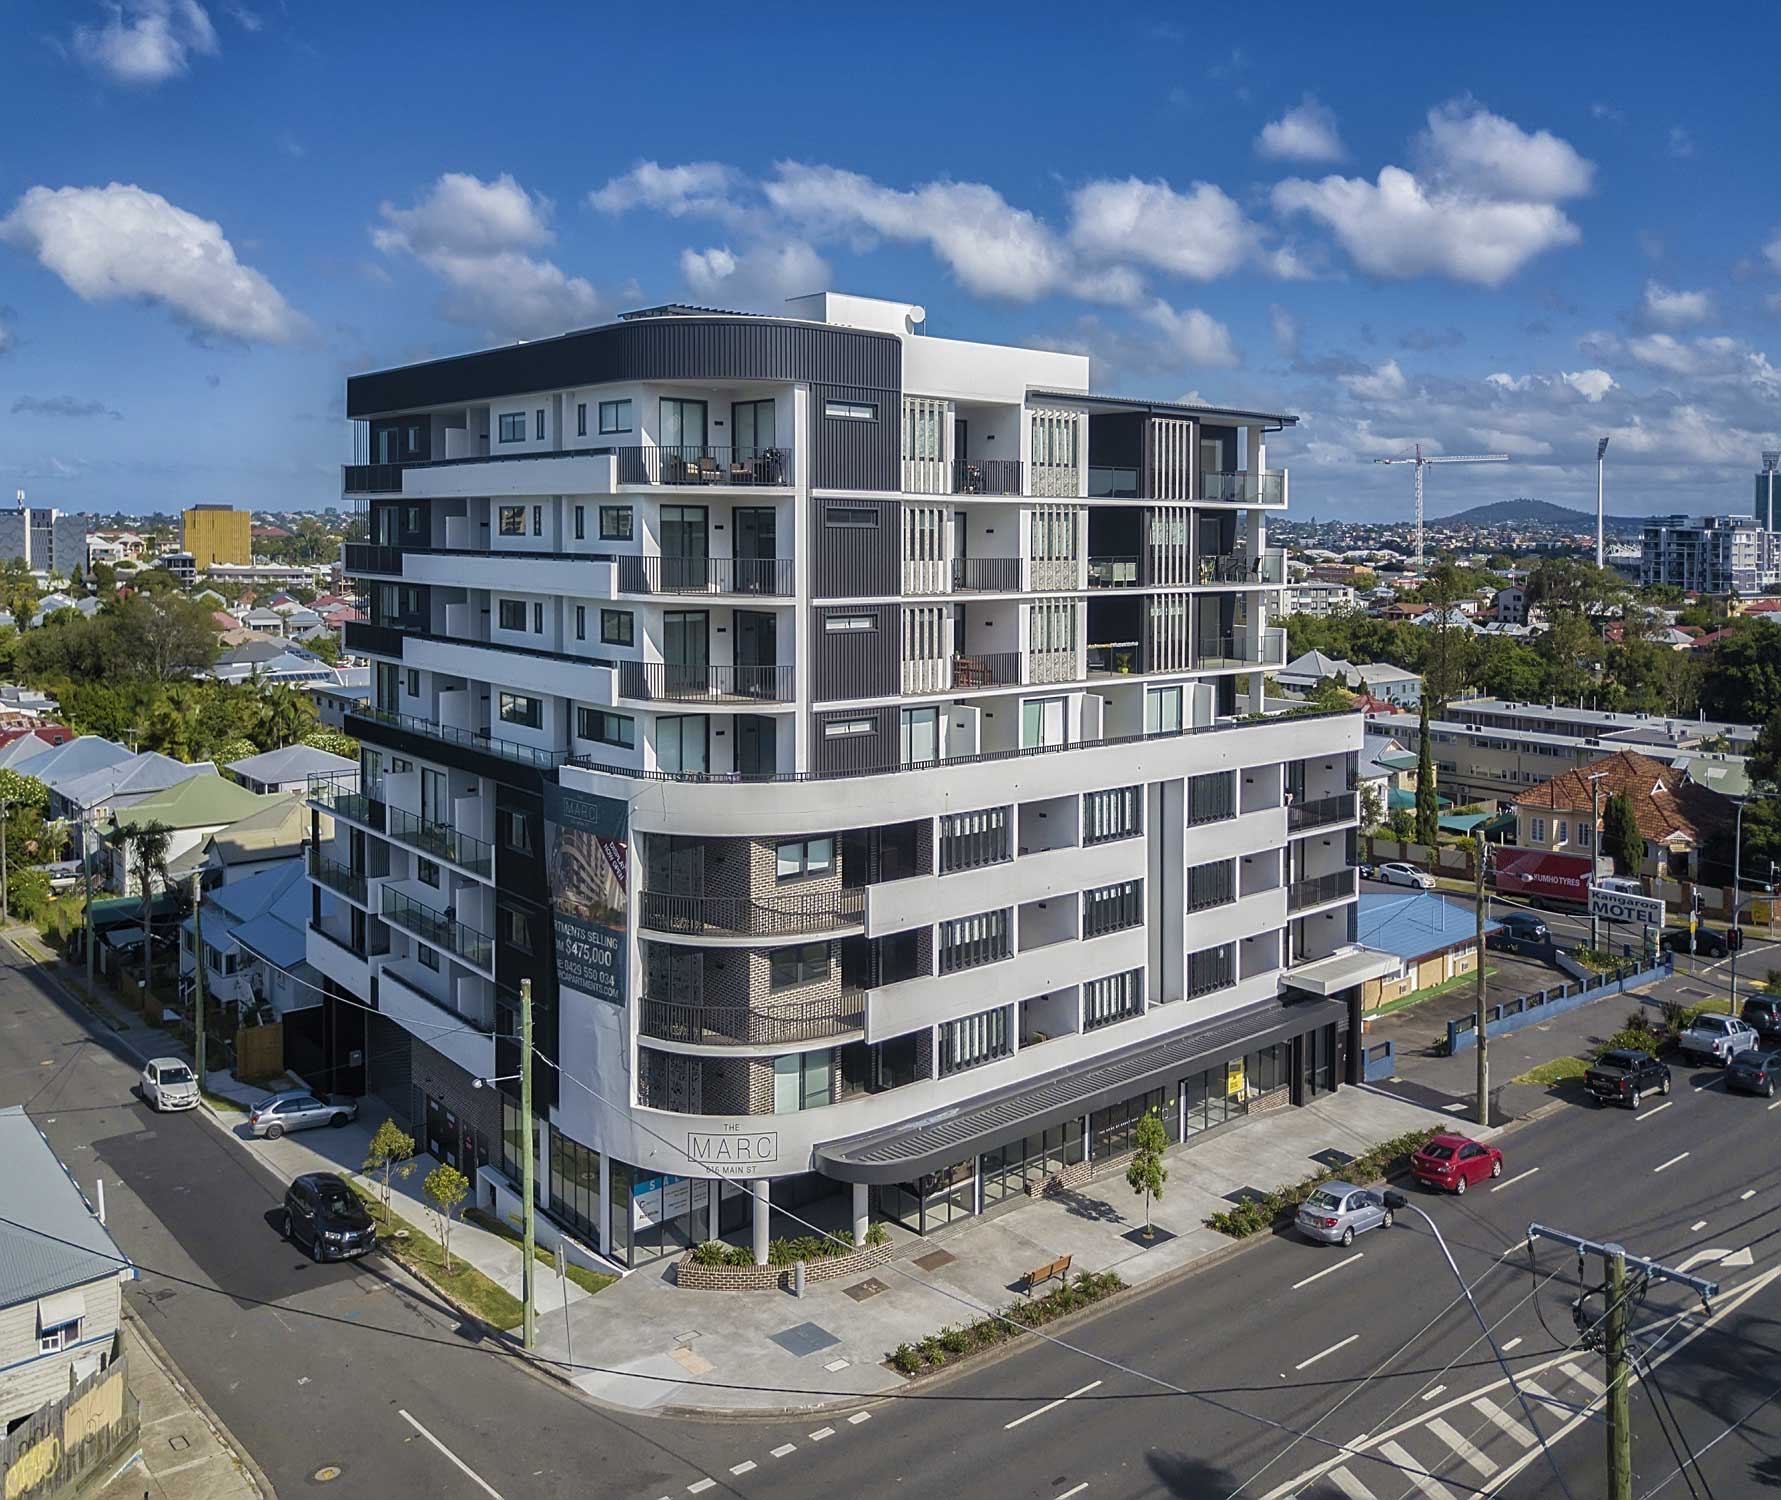 Drone Photography Brisbane - The Marc at Kangaroo Point